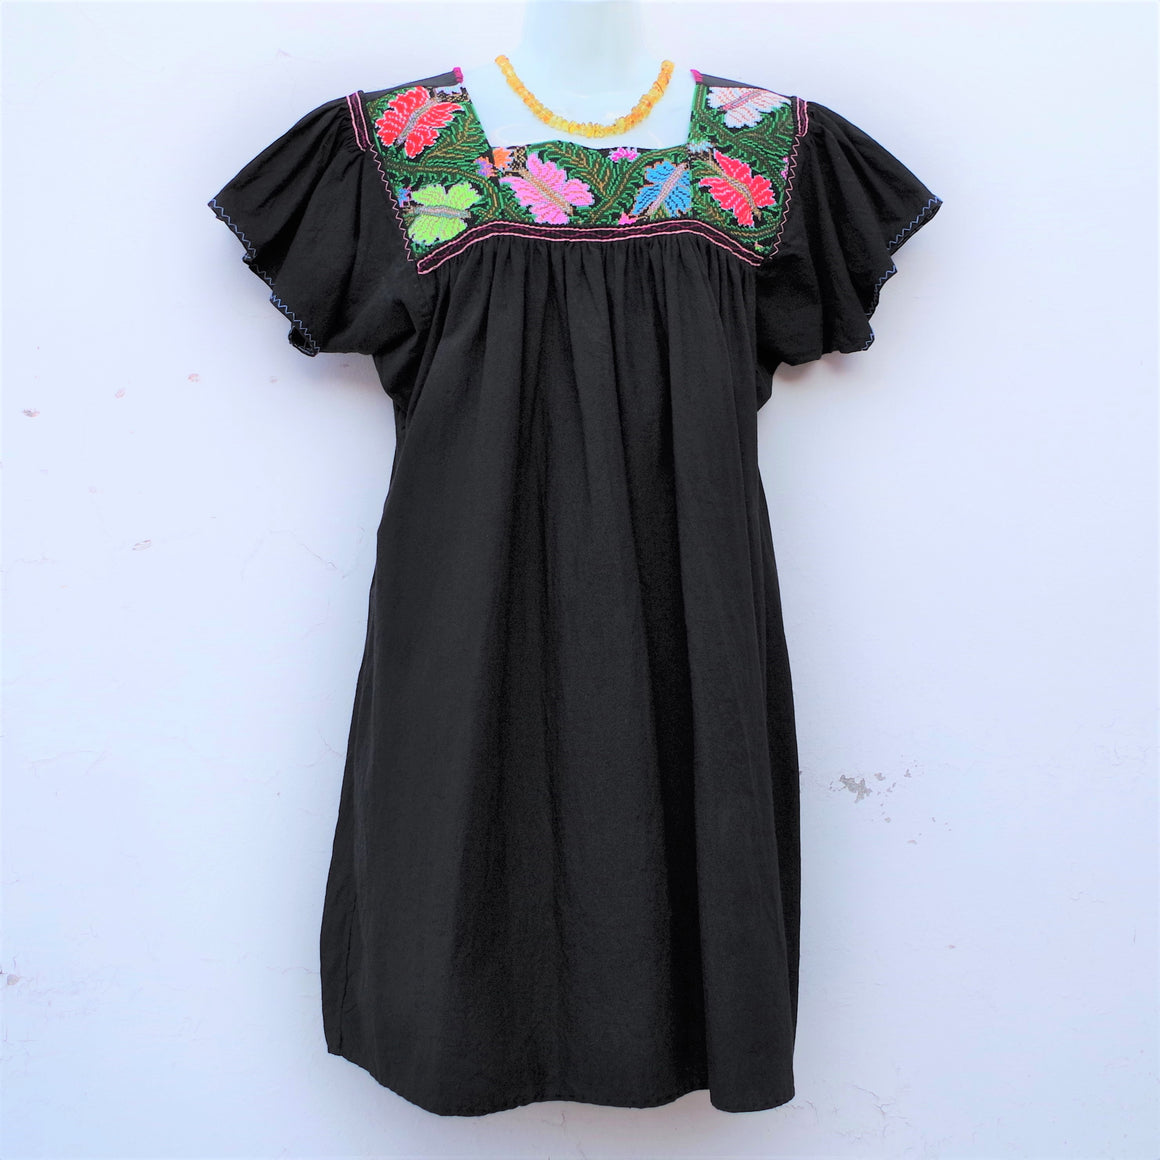 Mayan Copal Black Mexican Huipil Vintage Blouse with Multi color Butterfly Hand Embroidery from Chiapas M Size